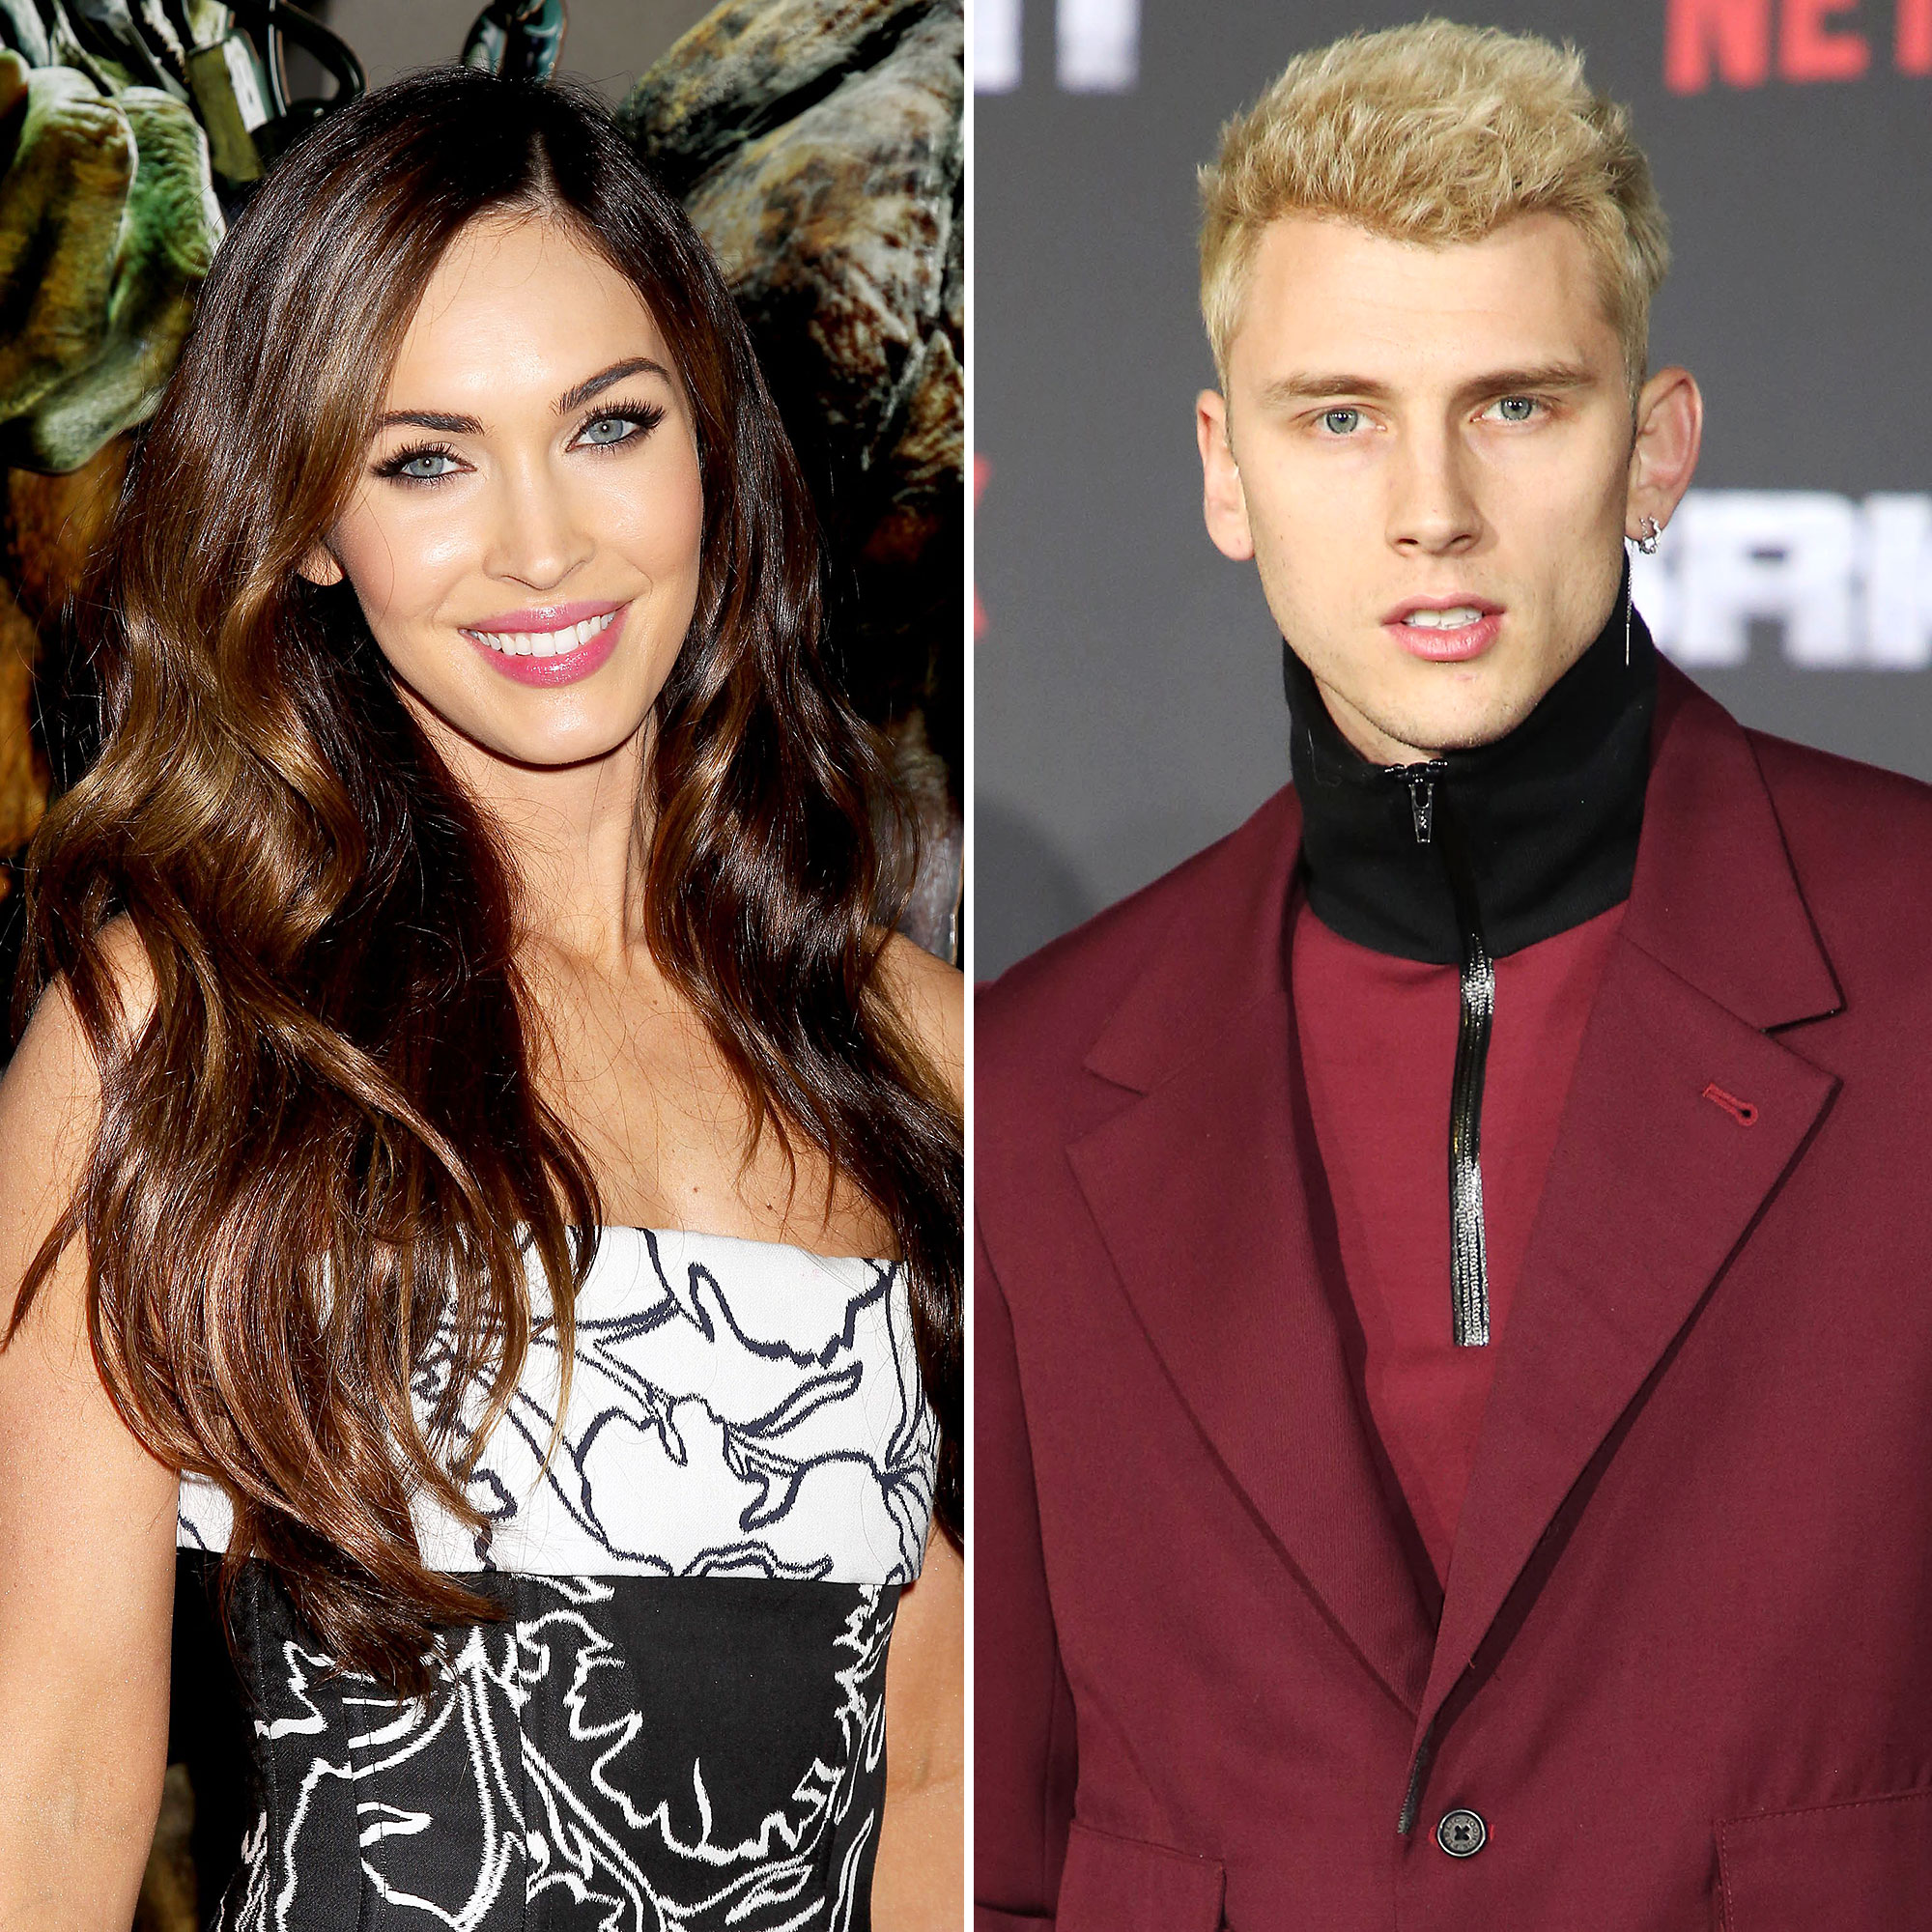 Megan Fox and Machine Gun Kelly Started Off as Friends But Have Definitely Hooked Up